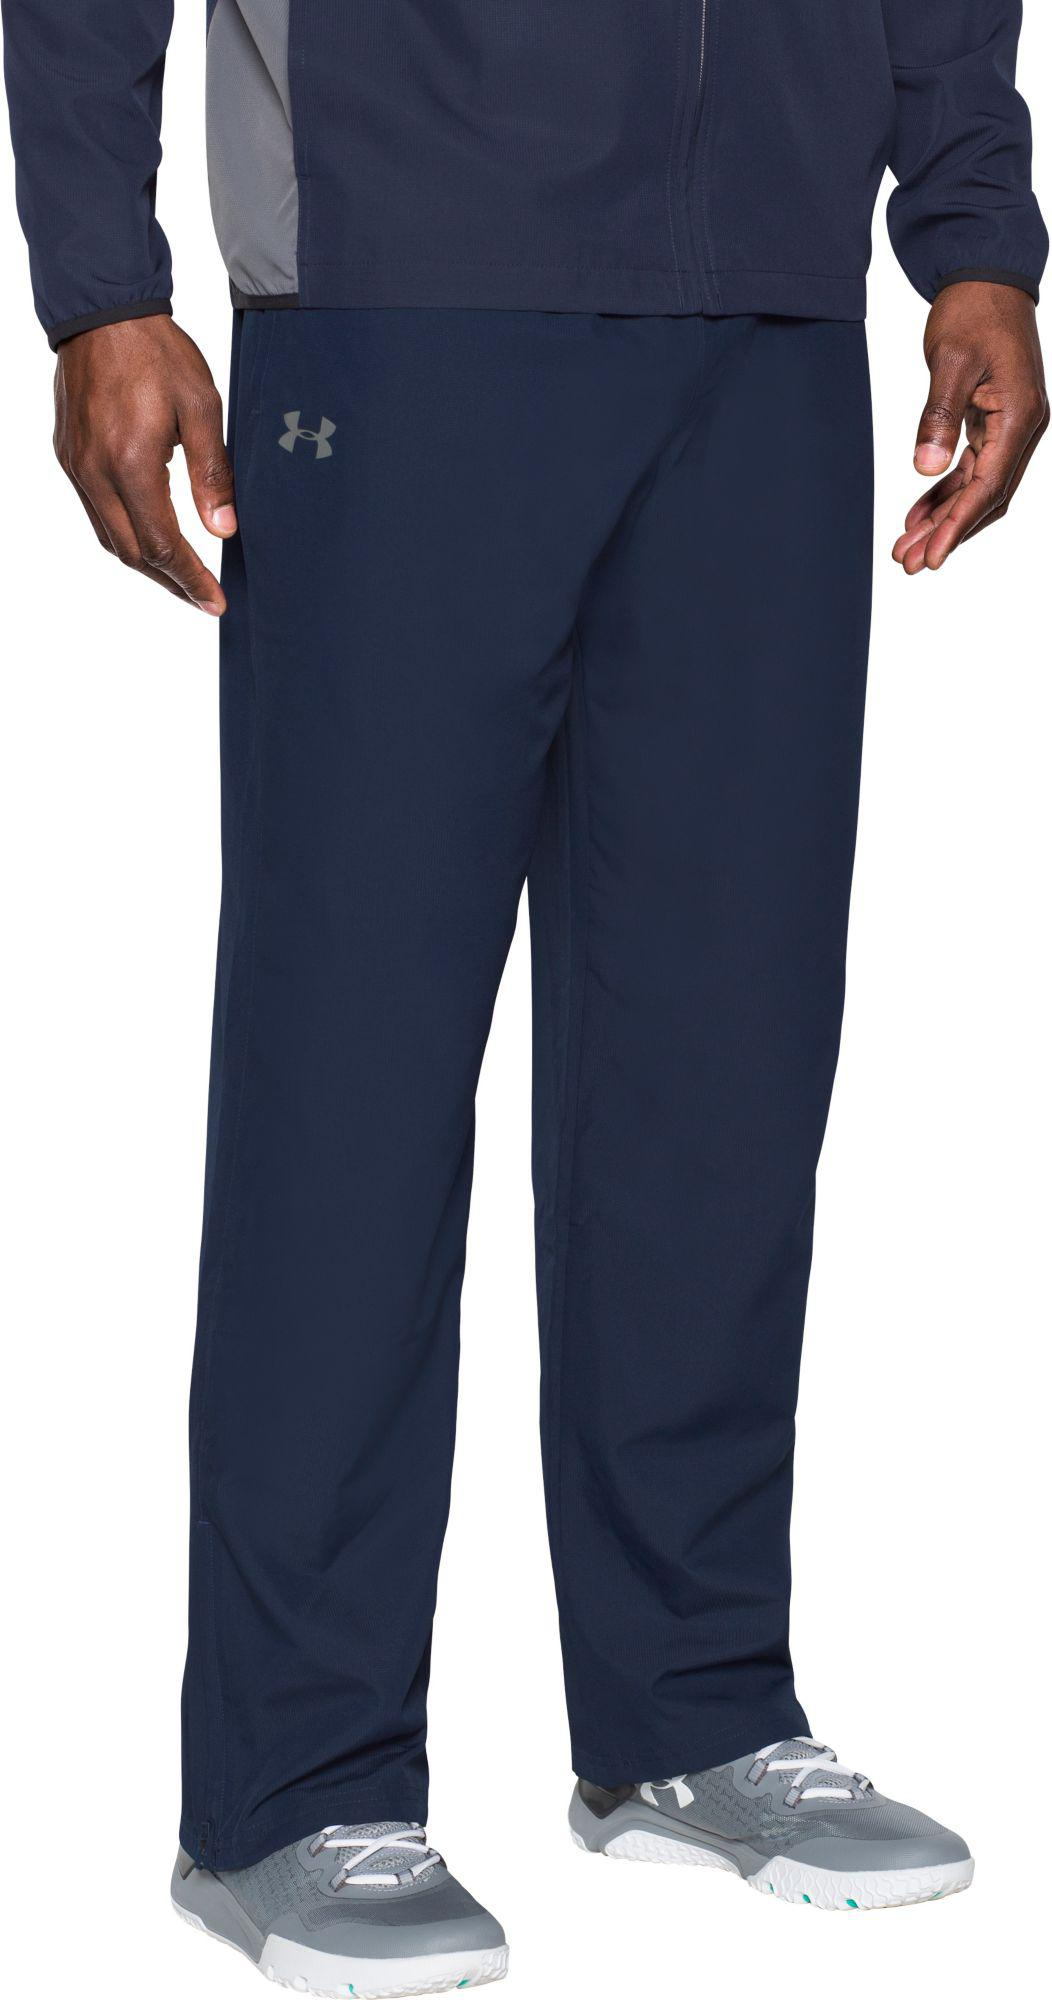 589a2efb0c8 Under Armour Vital Warm-up Pants in Blue for Men - Lyst